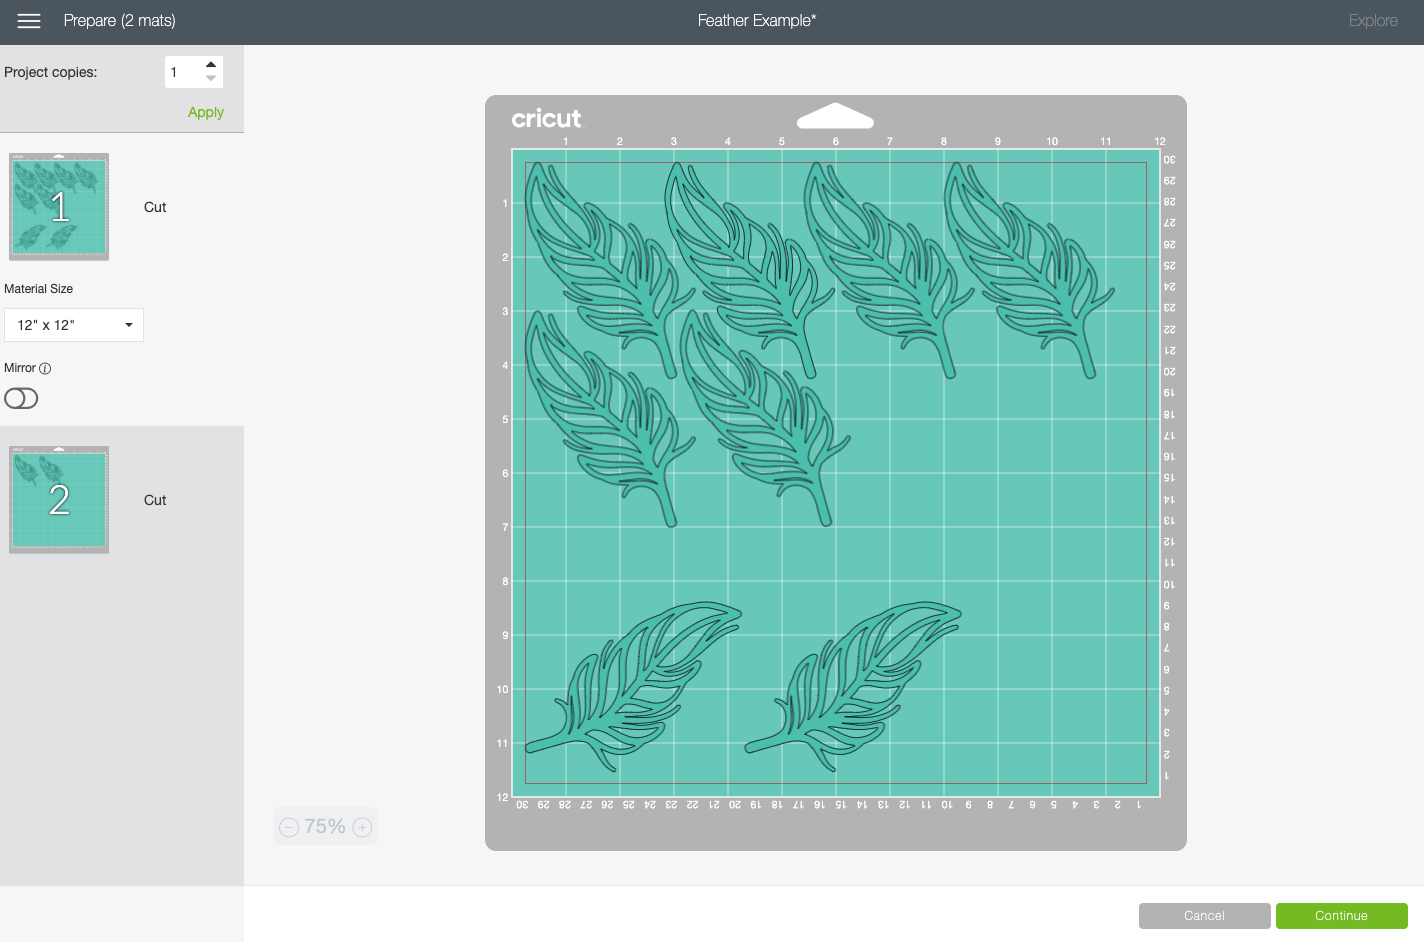 Cricut Design Space: First six feathers all nested together on the mat.